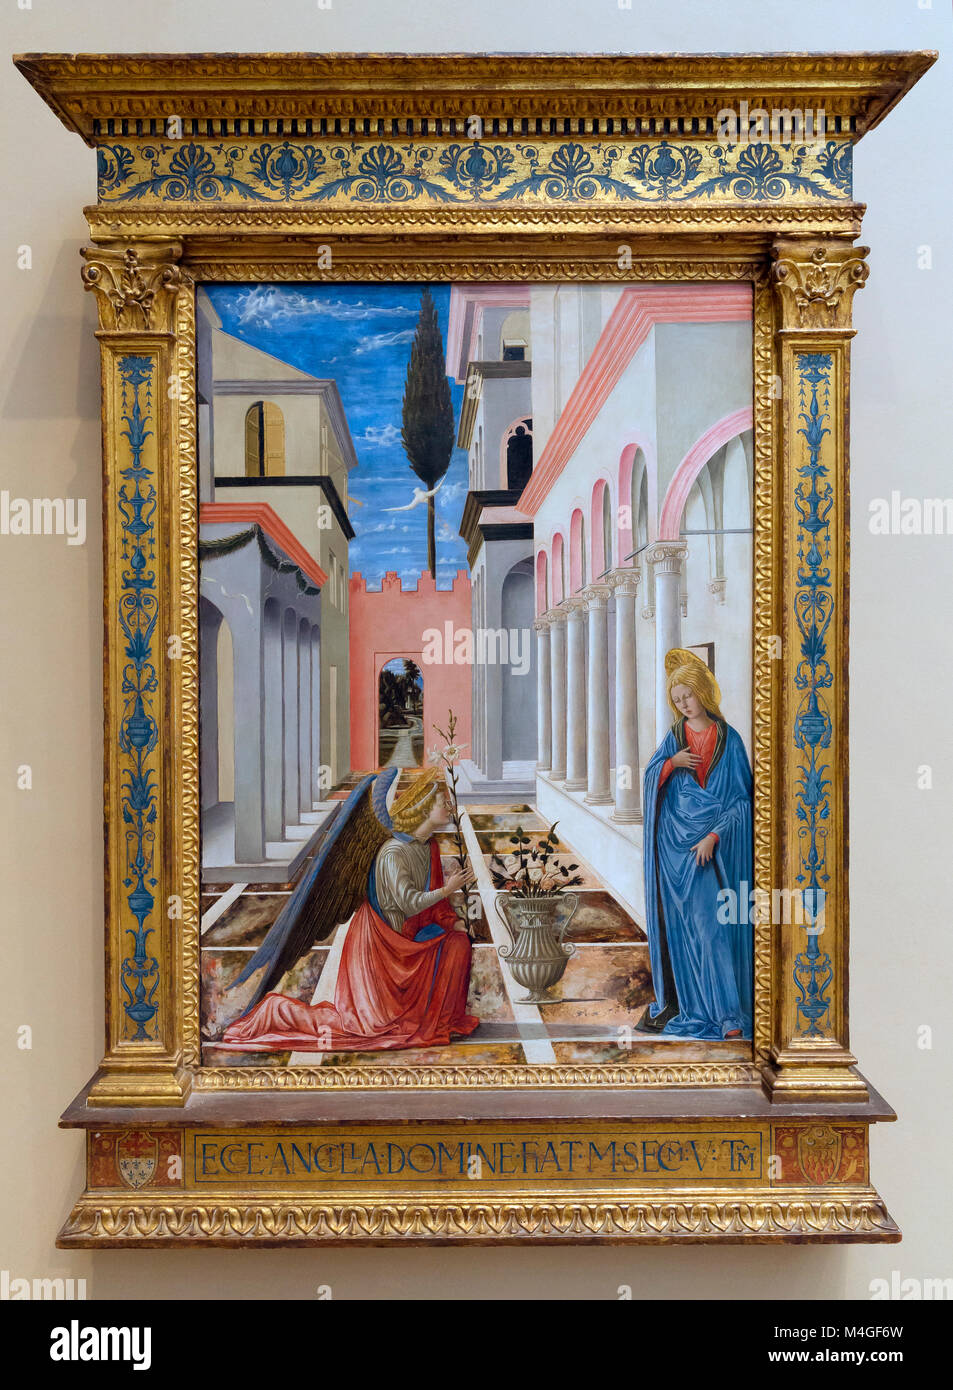 The Annunciation, Fra Carnevale, circa 1445-1450, National Gallery of Art, Washington DC, USA, North America - Stock Image